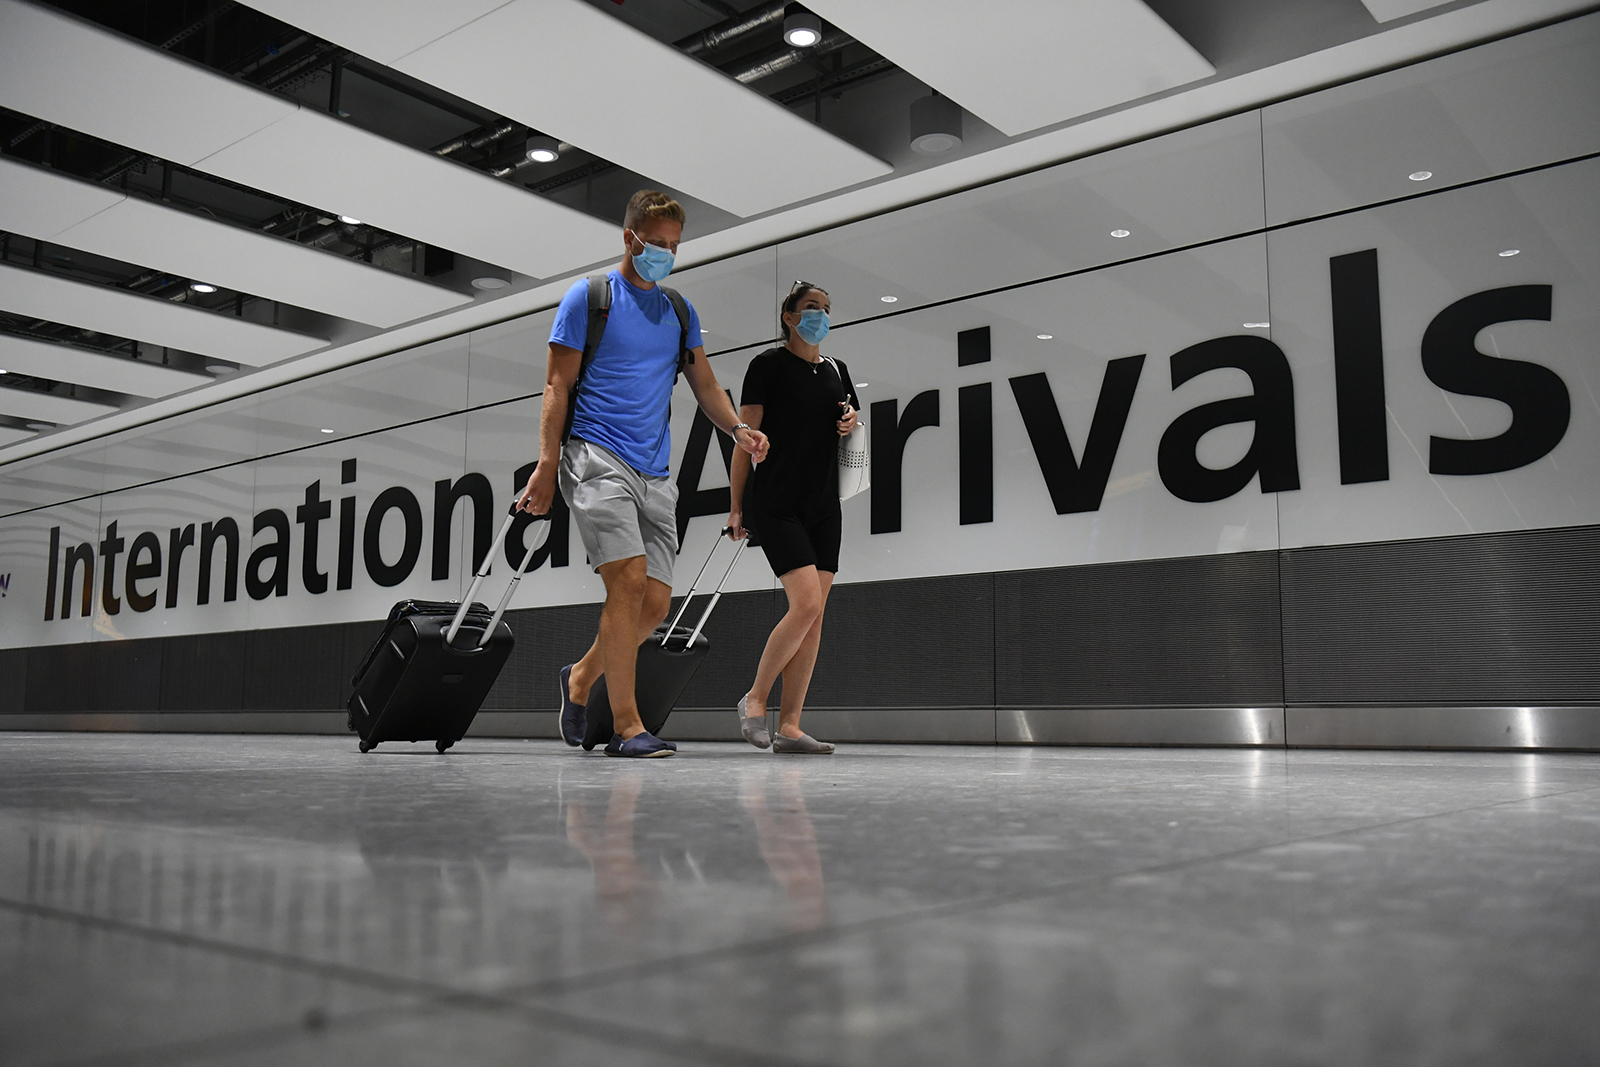 Passengers arrive at Heathrow Airport after a flight from Dubrovnik, Croatia, landed on August 21.